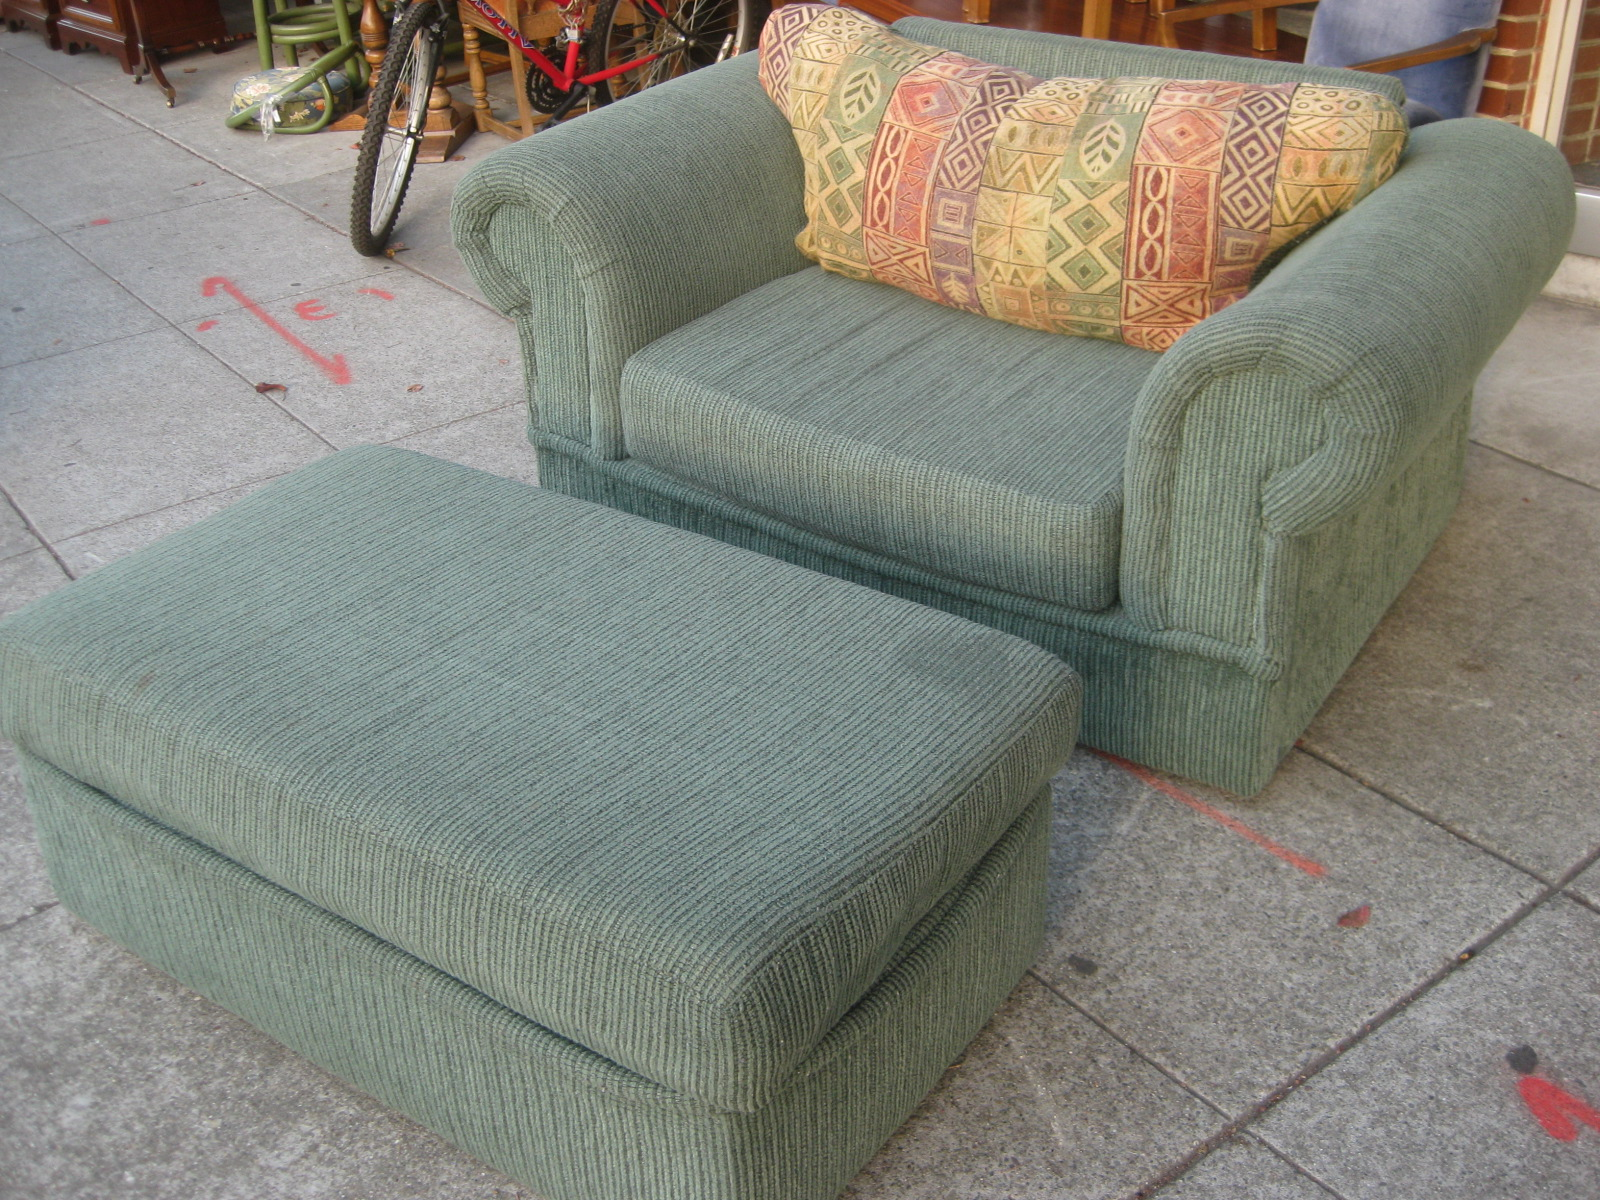 Oversized Sofa Chair Uhuru Furniture And Collectibles Sold Oversized Chair And